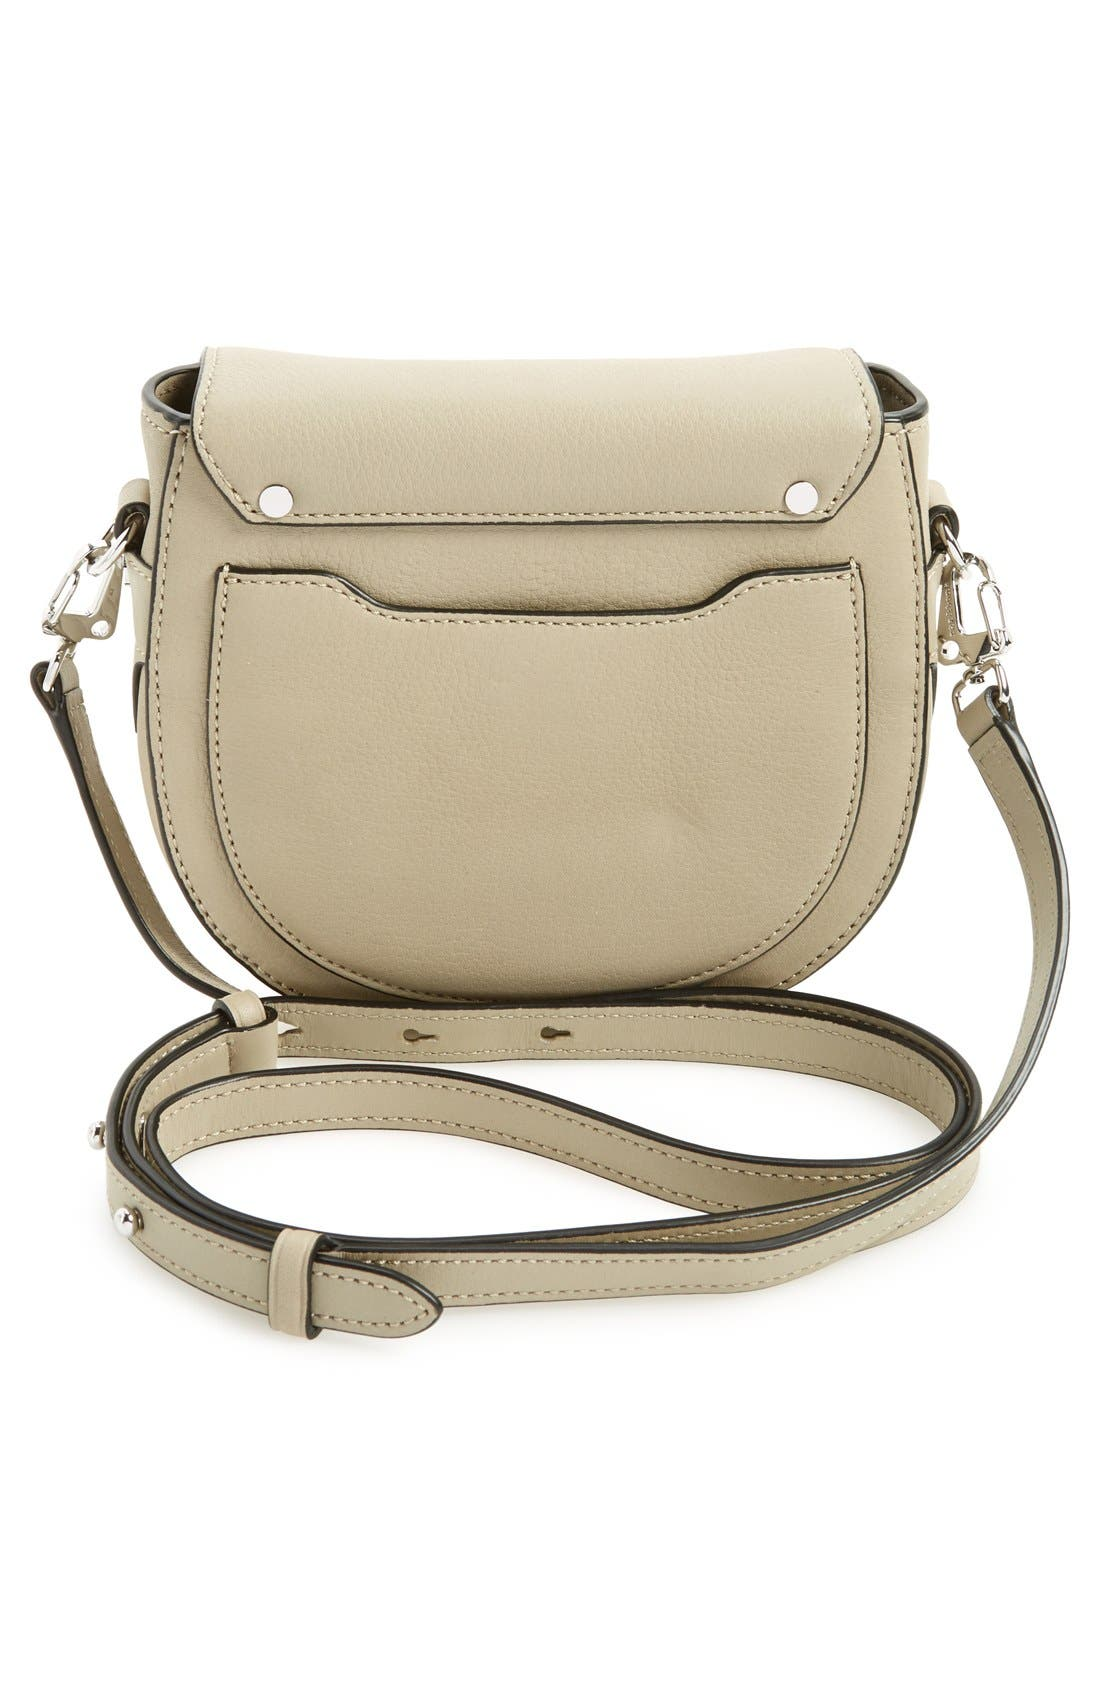 Alternate Image 3  - rag & bone 'Mini Flight' Leather Crossbody Saddle Bag